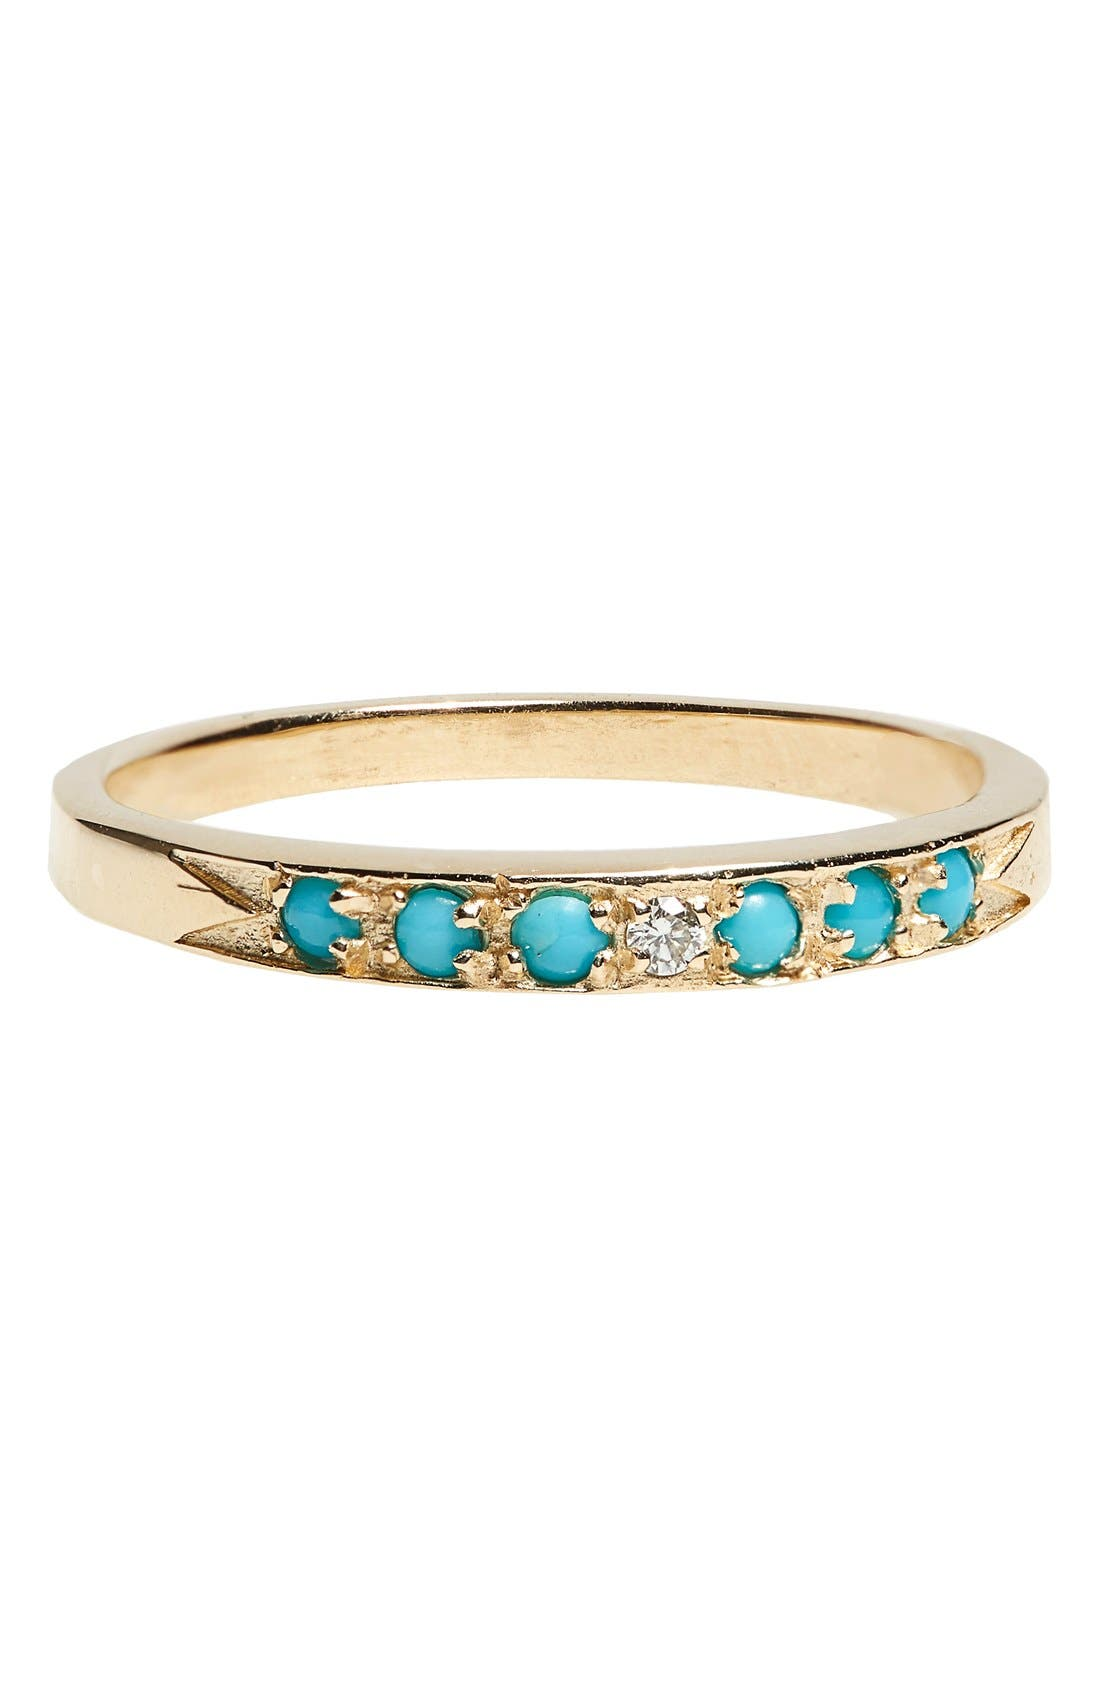 Mociun 'Moon & Stars' Single Band Turquoise & Diamond Ring